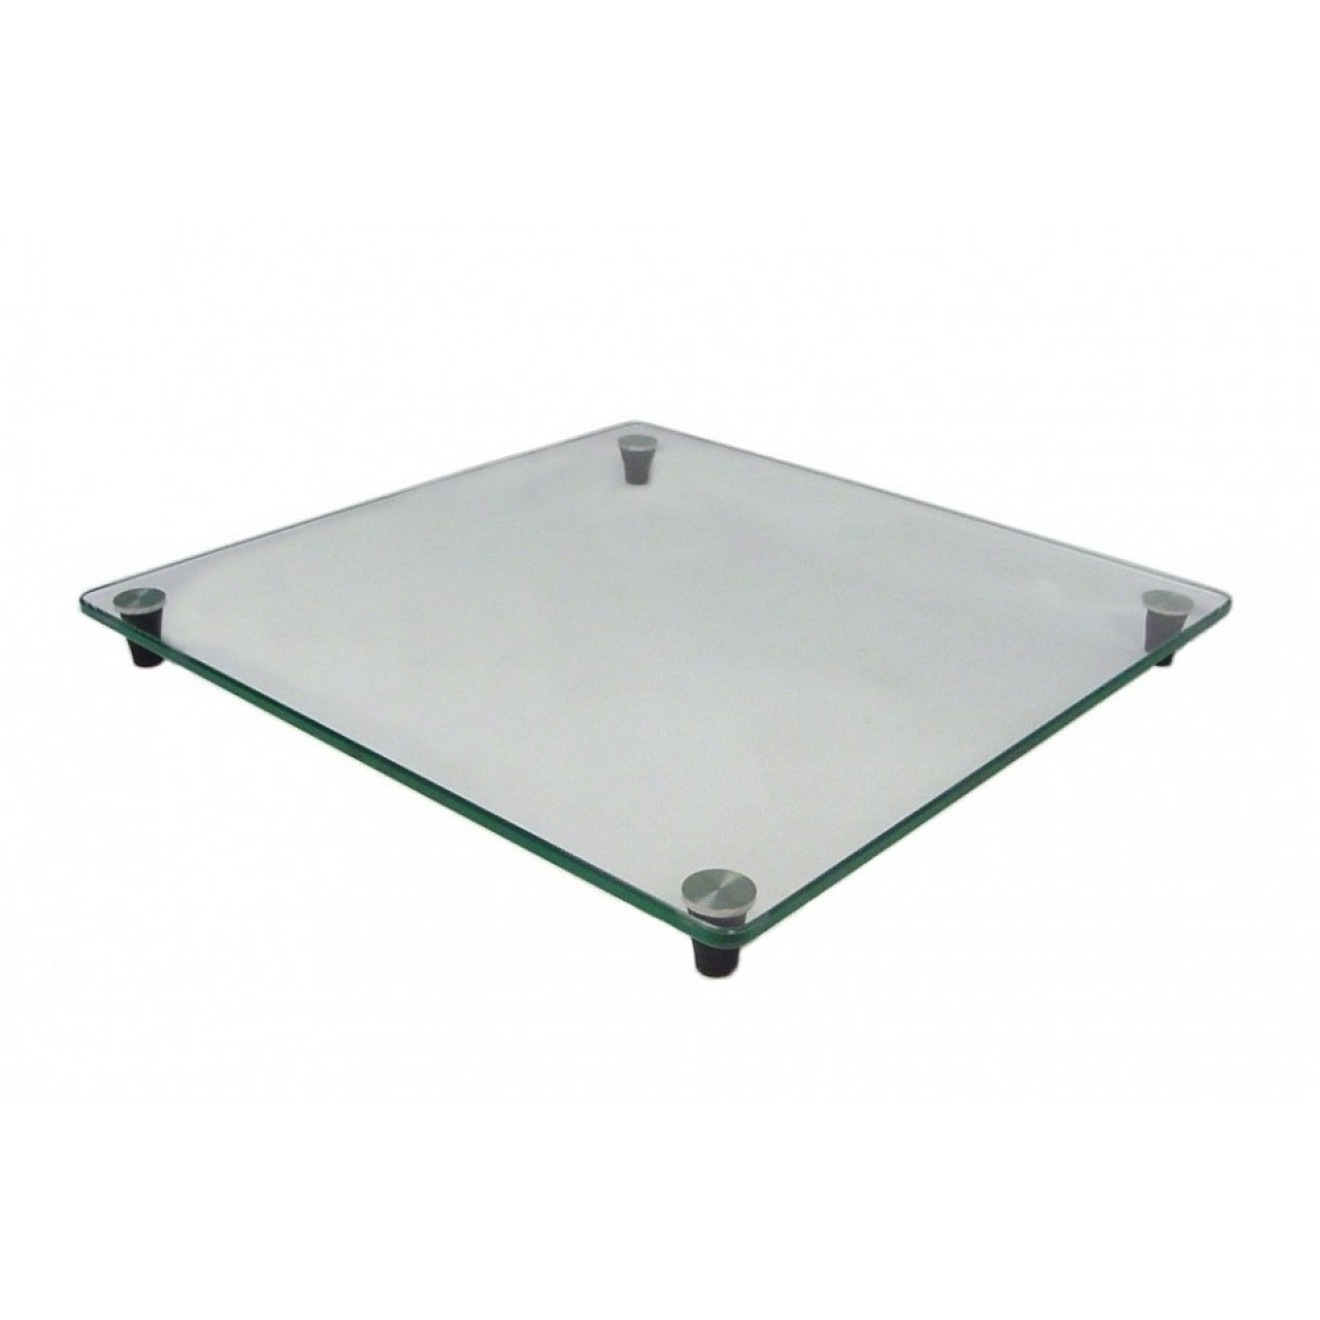 Safety glass table top 50 x 50 cm 20 x 20 with rubber for 52 glass table top